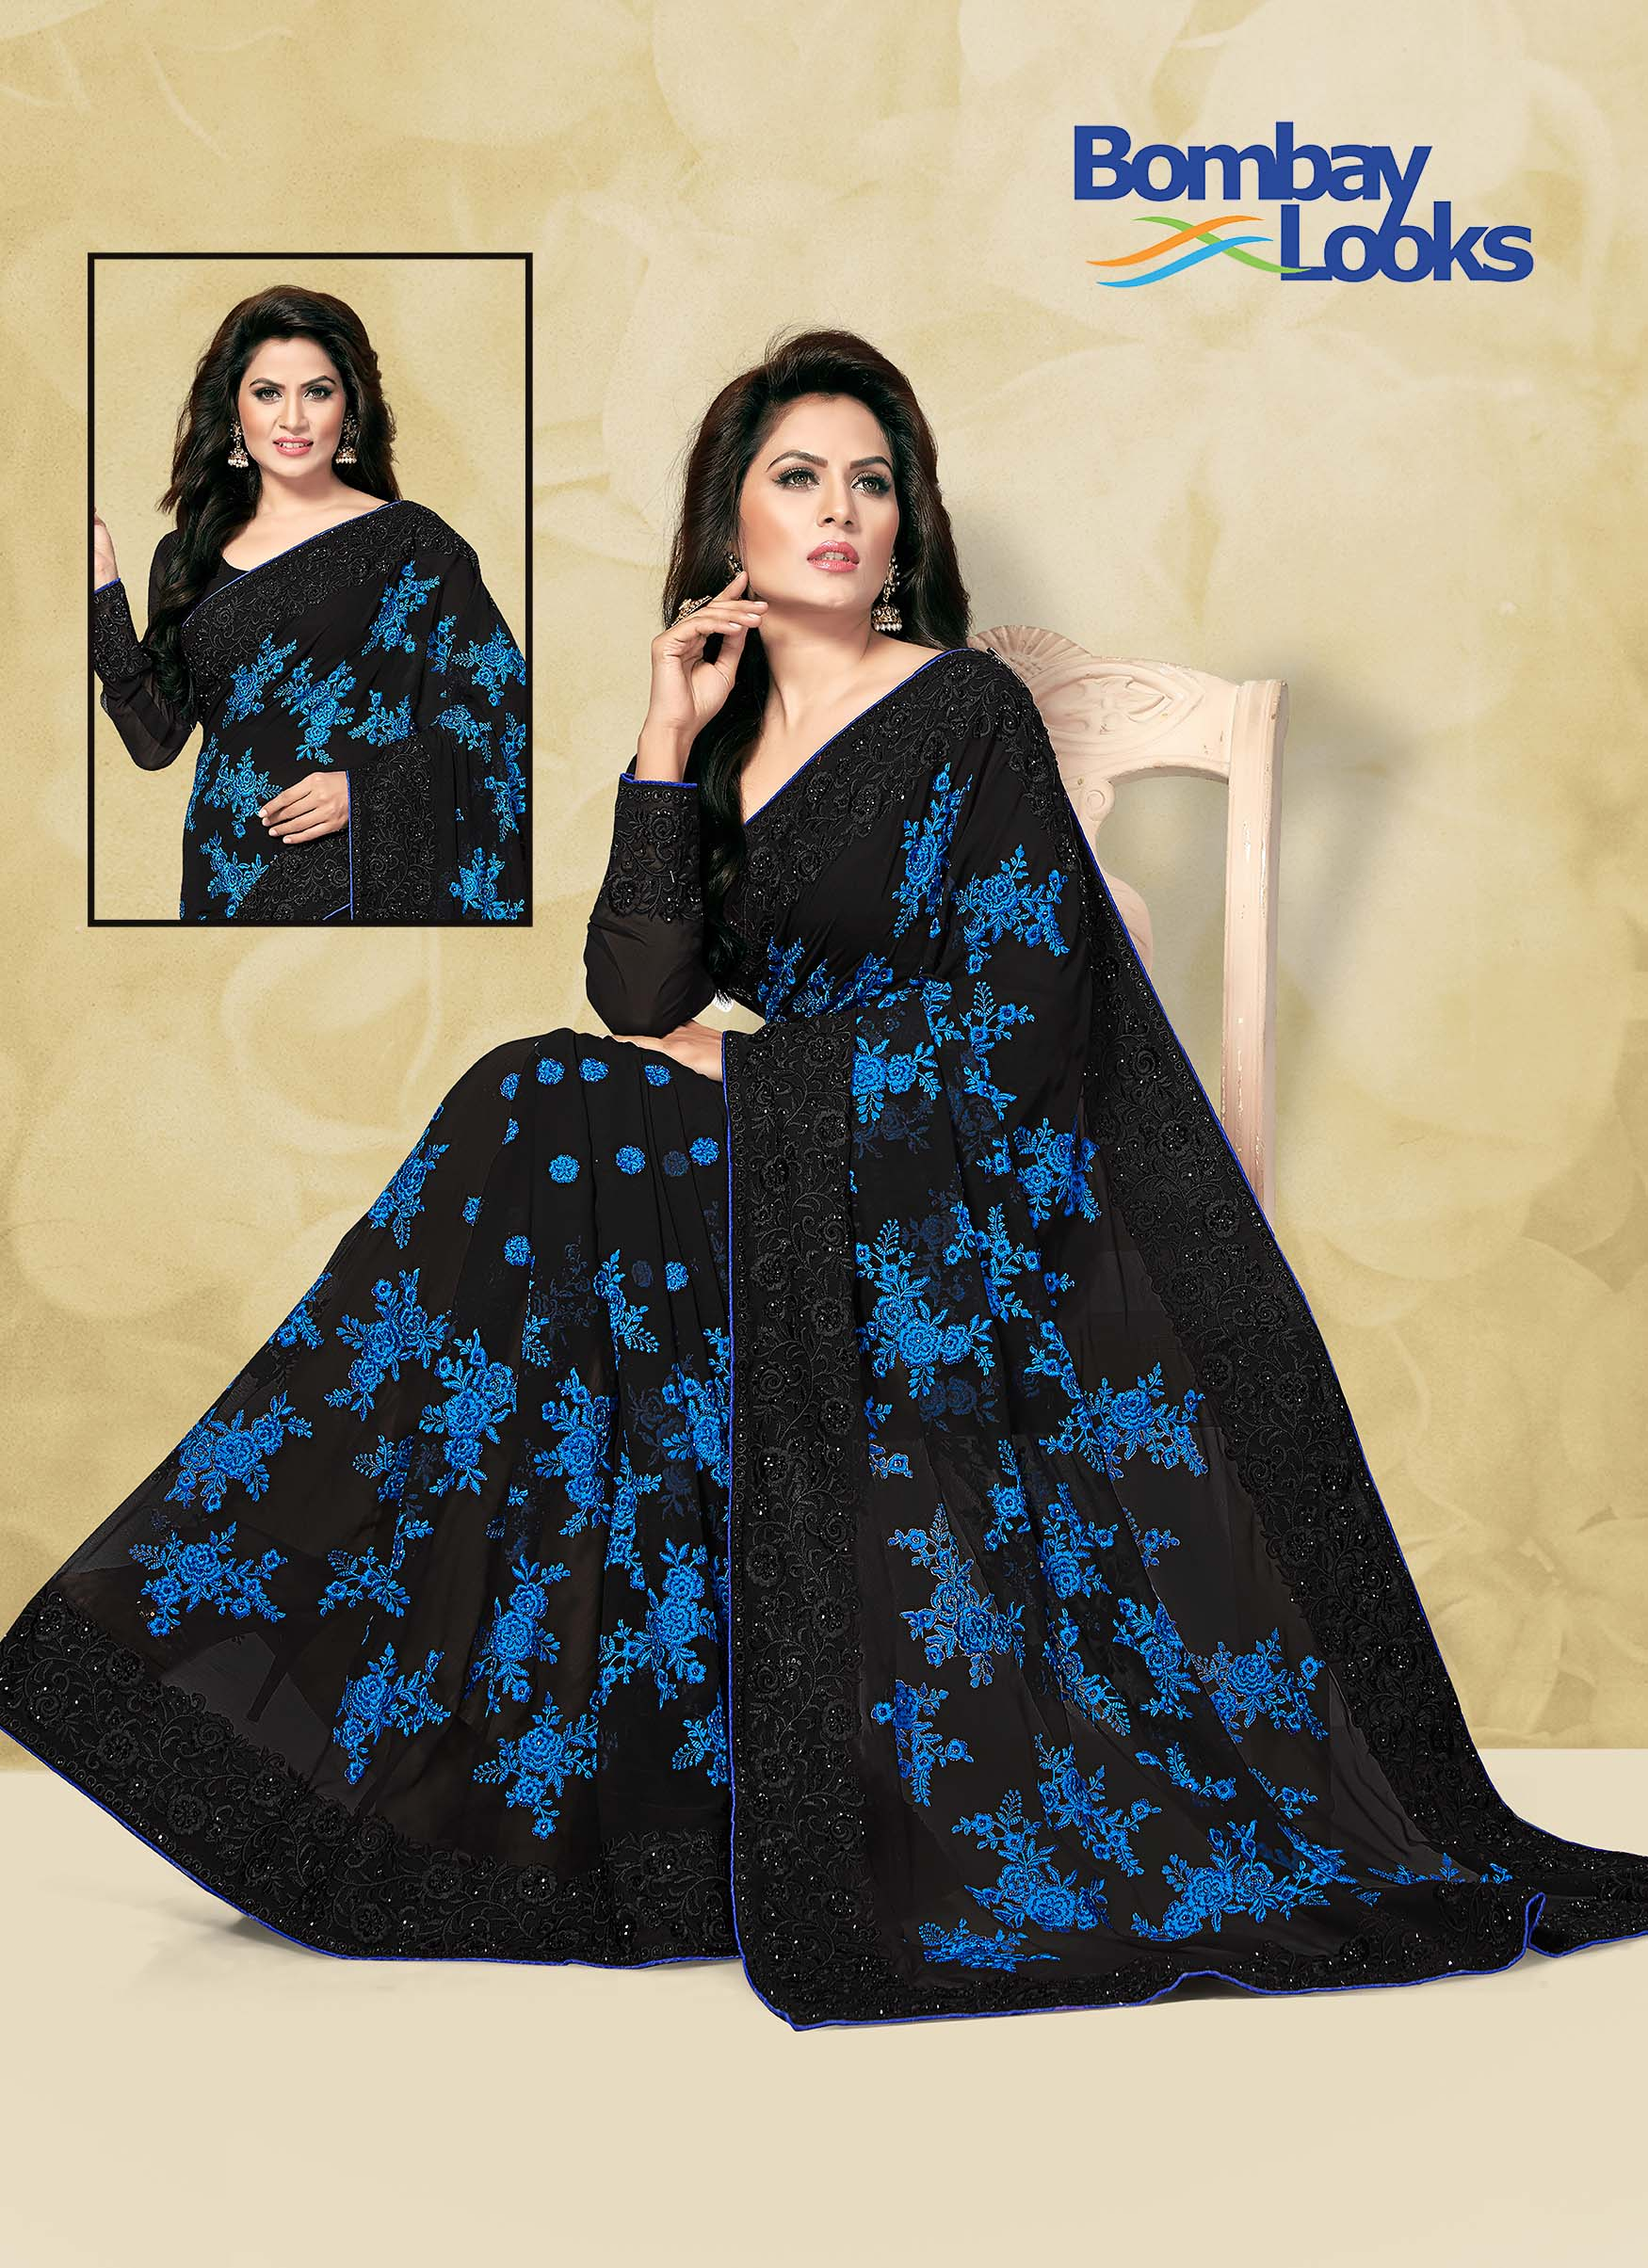 Stylish georgette Saree in an amazing combination of Black and Blue